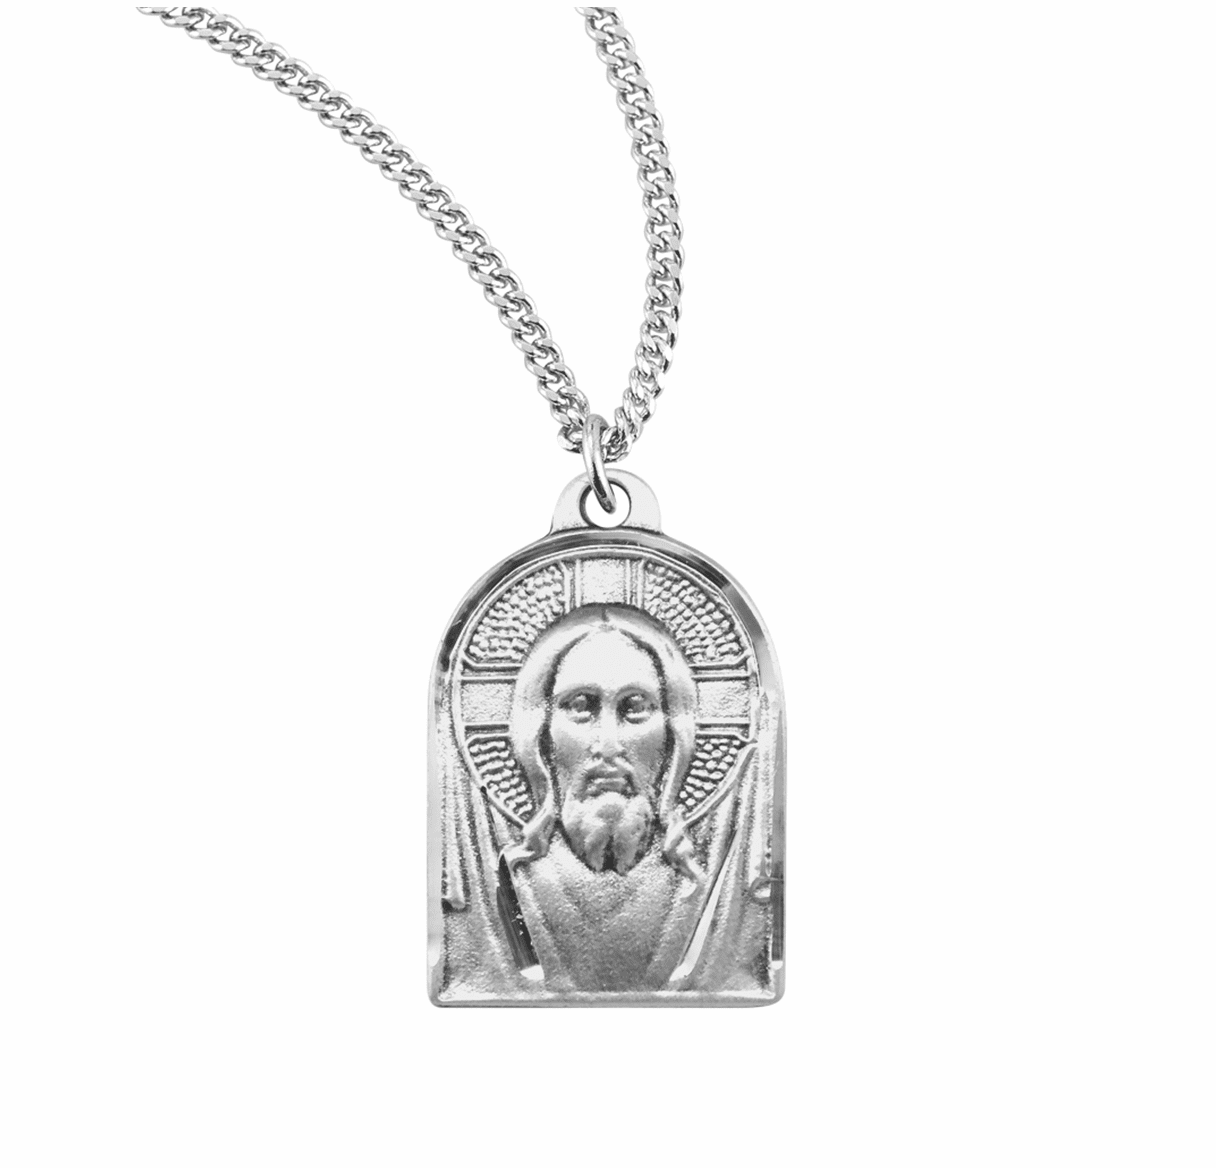 Renaissance Jesus Sterling Silver Medal Necklace by HMH Religious